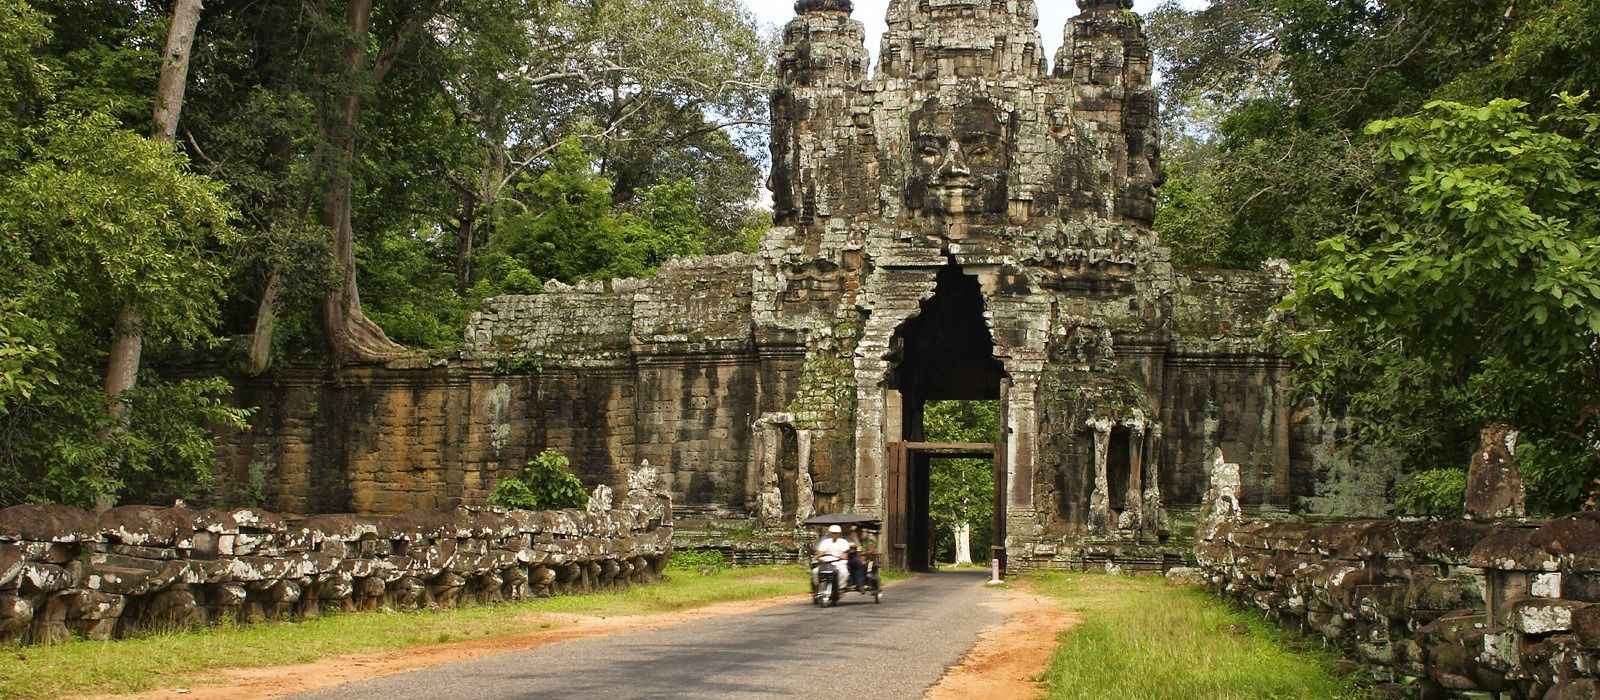 Wat Kompuong Kompong Thom, Exclusive Travel Tips for Your Destination Kompong Thom in Cambodia